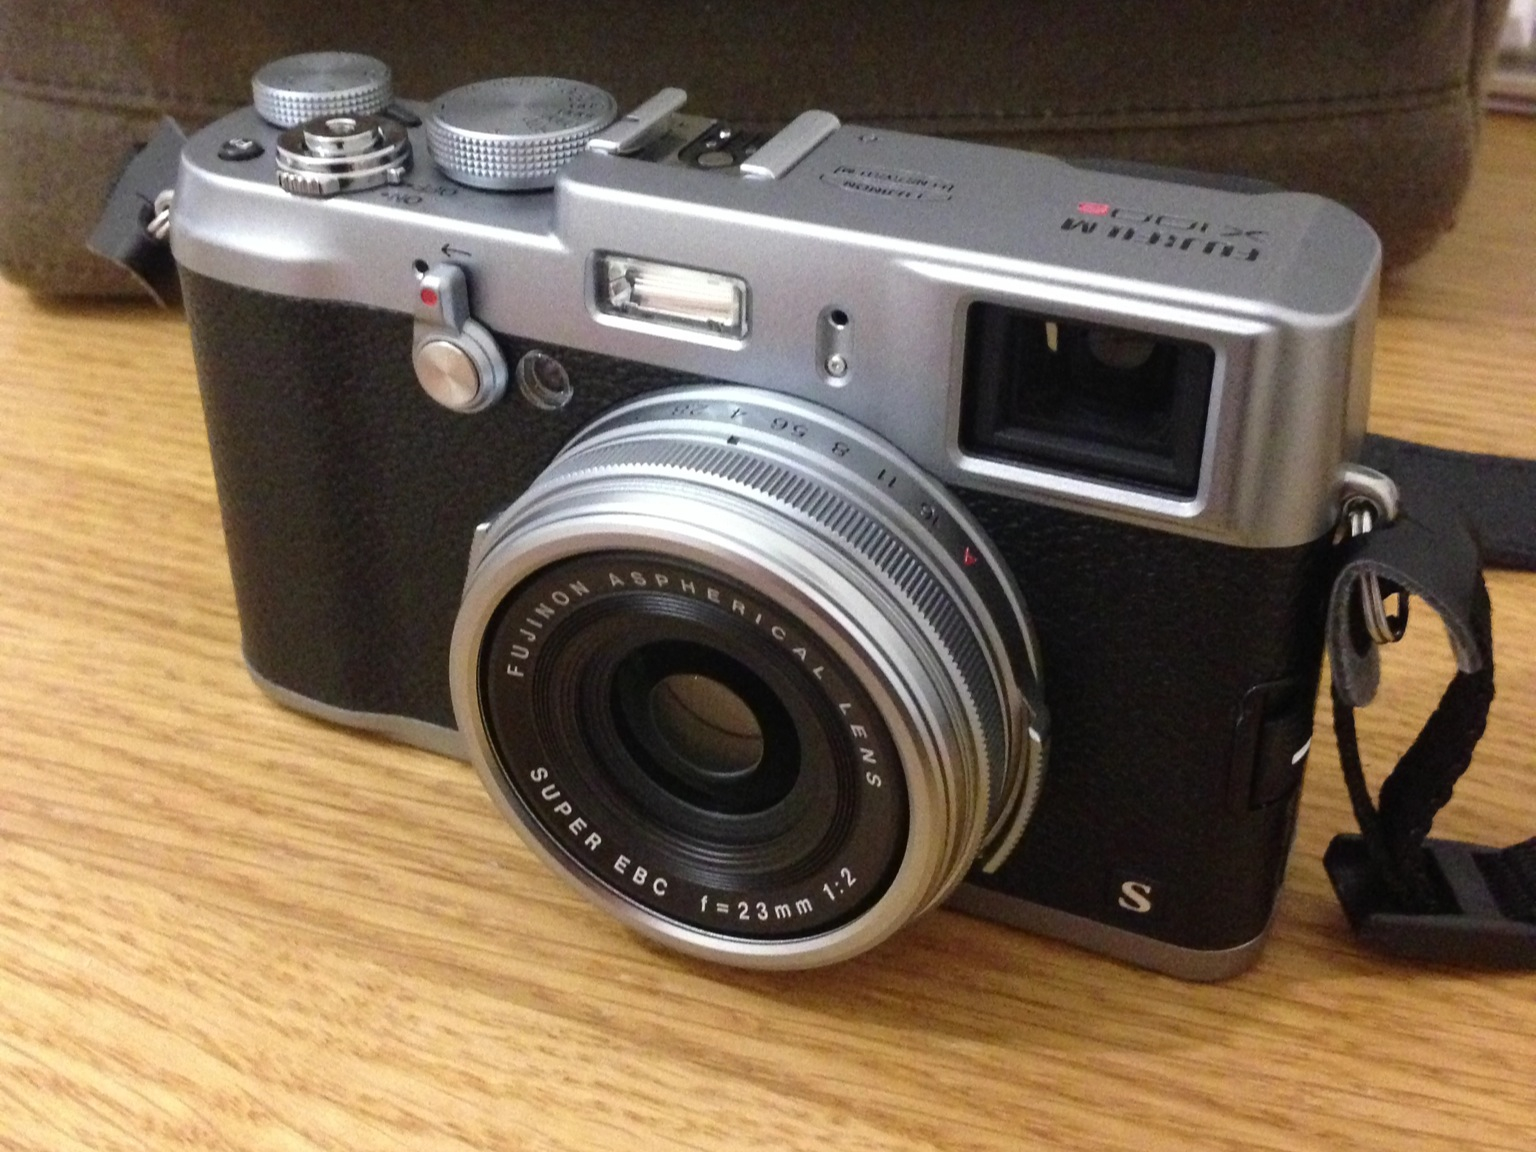 Fujifilm X100s (taken with a crappy iPhone 5)